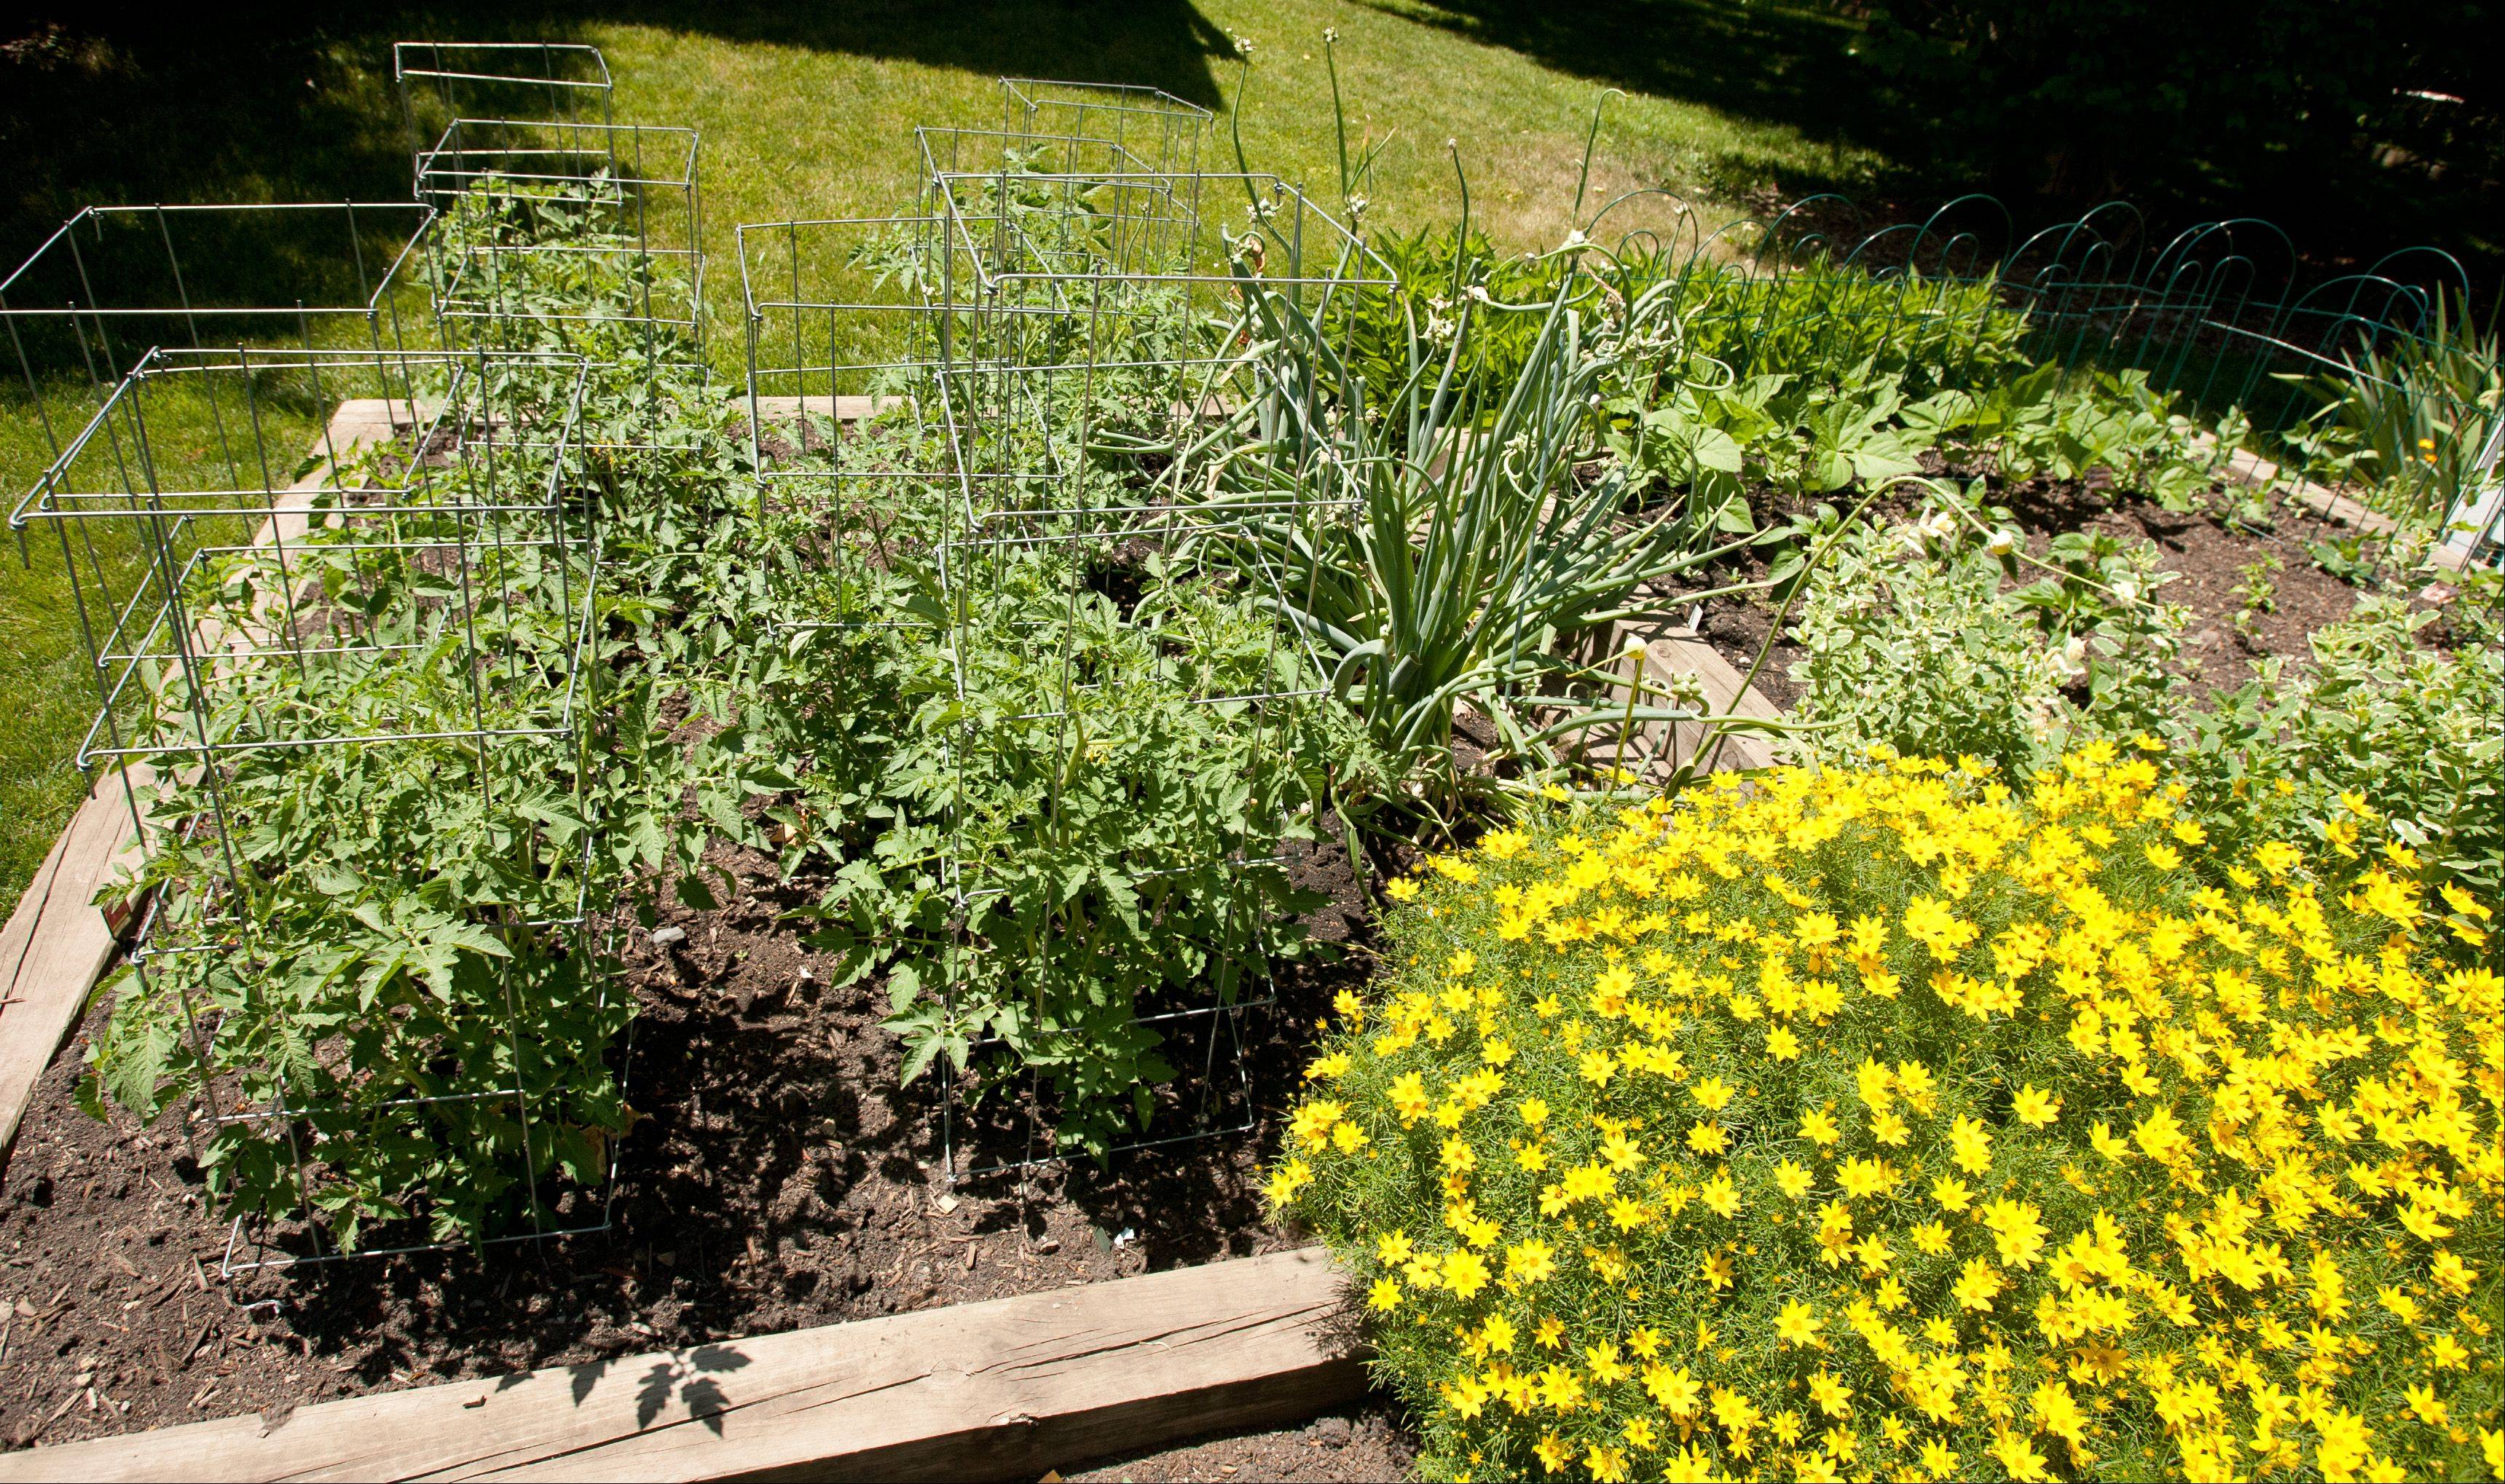 Kathy and Gary Lenke of Lisle believe a garden should be changed as it matures. Their vegetable garden has expanded to include herbs.